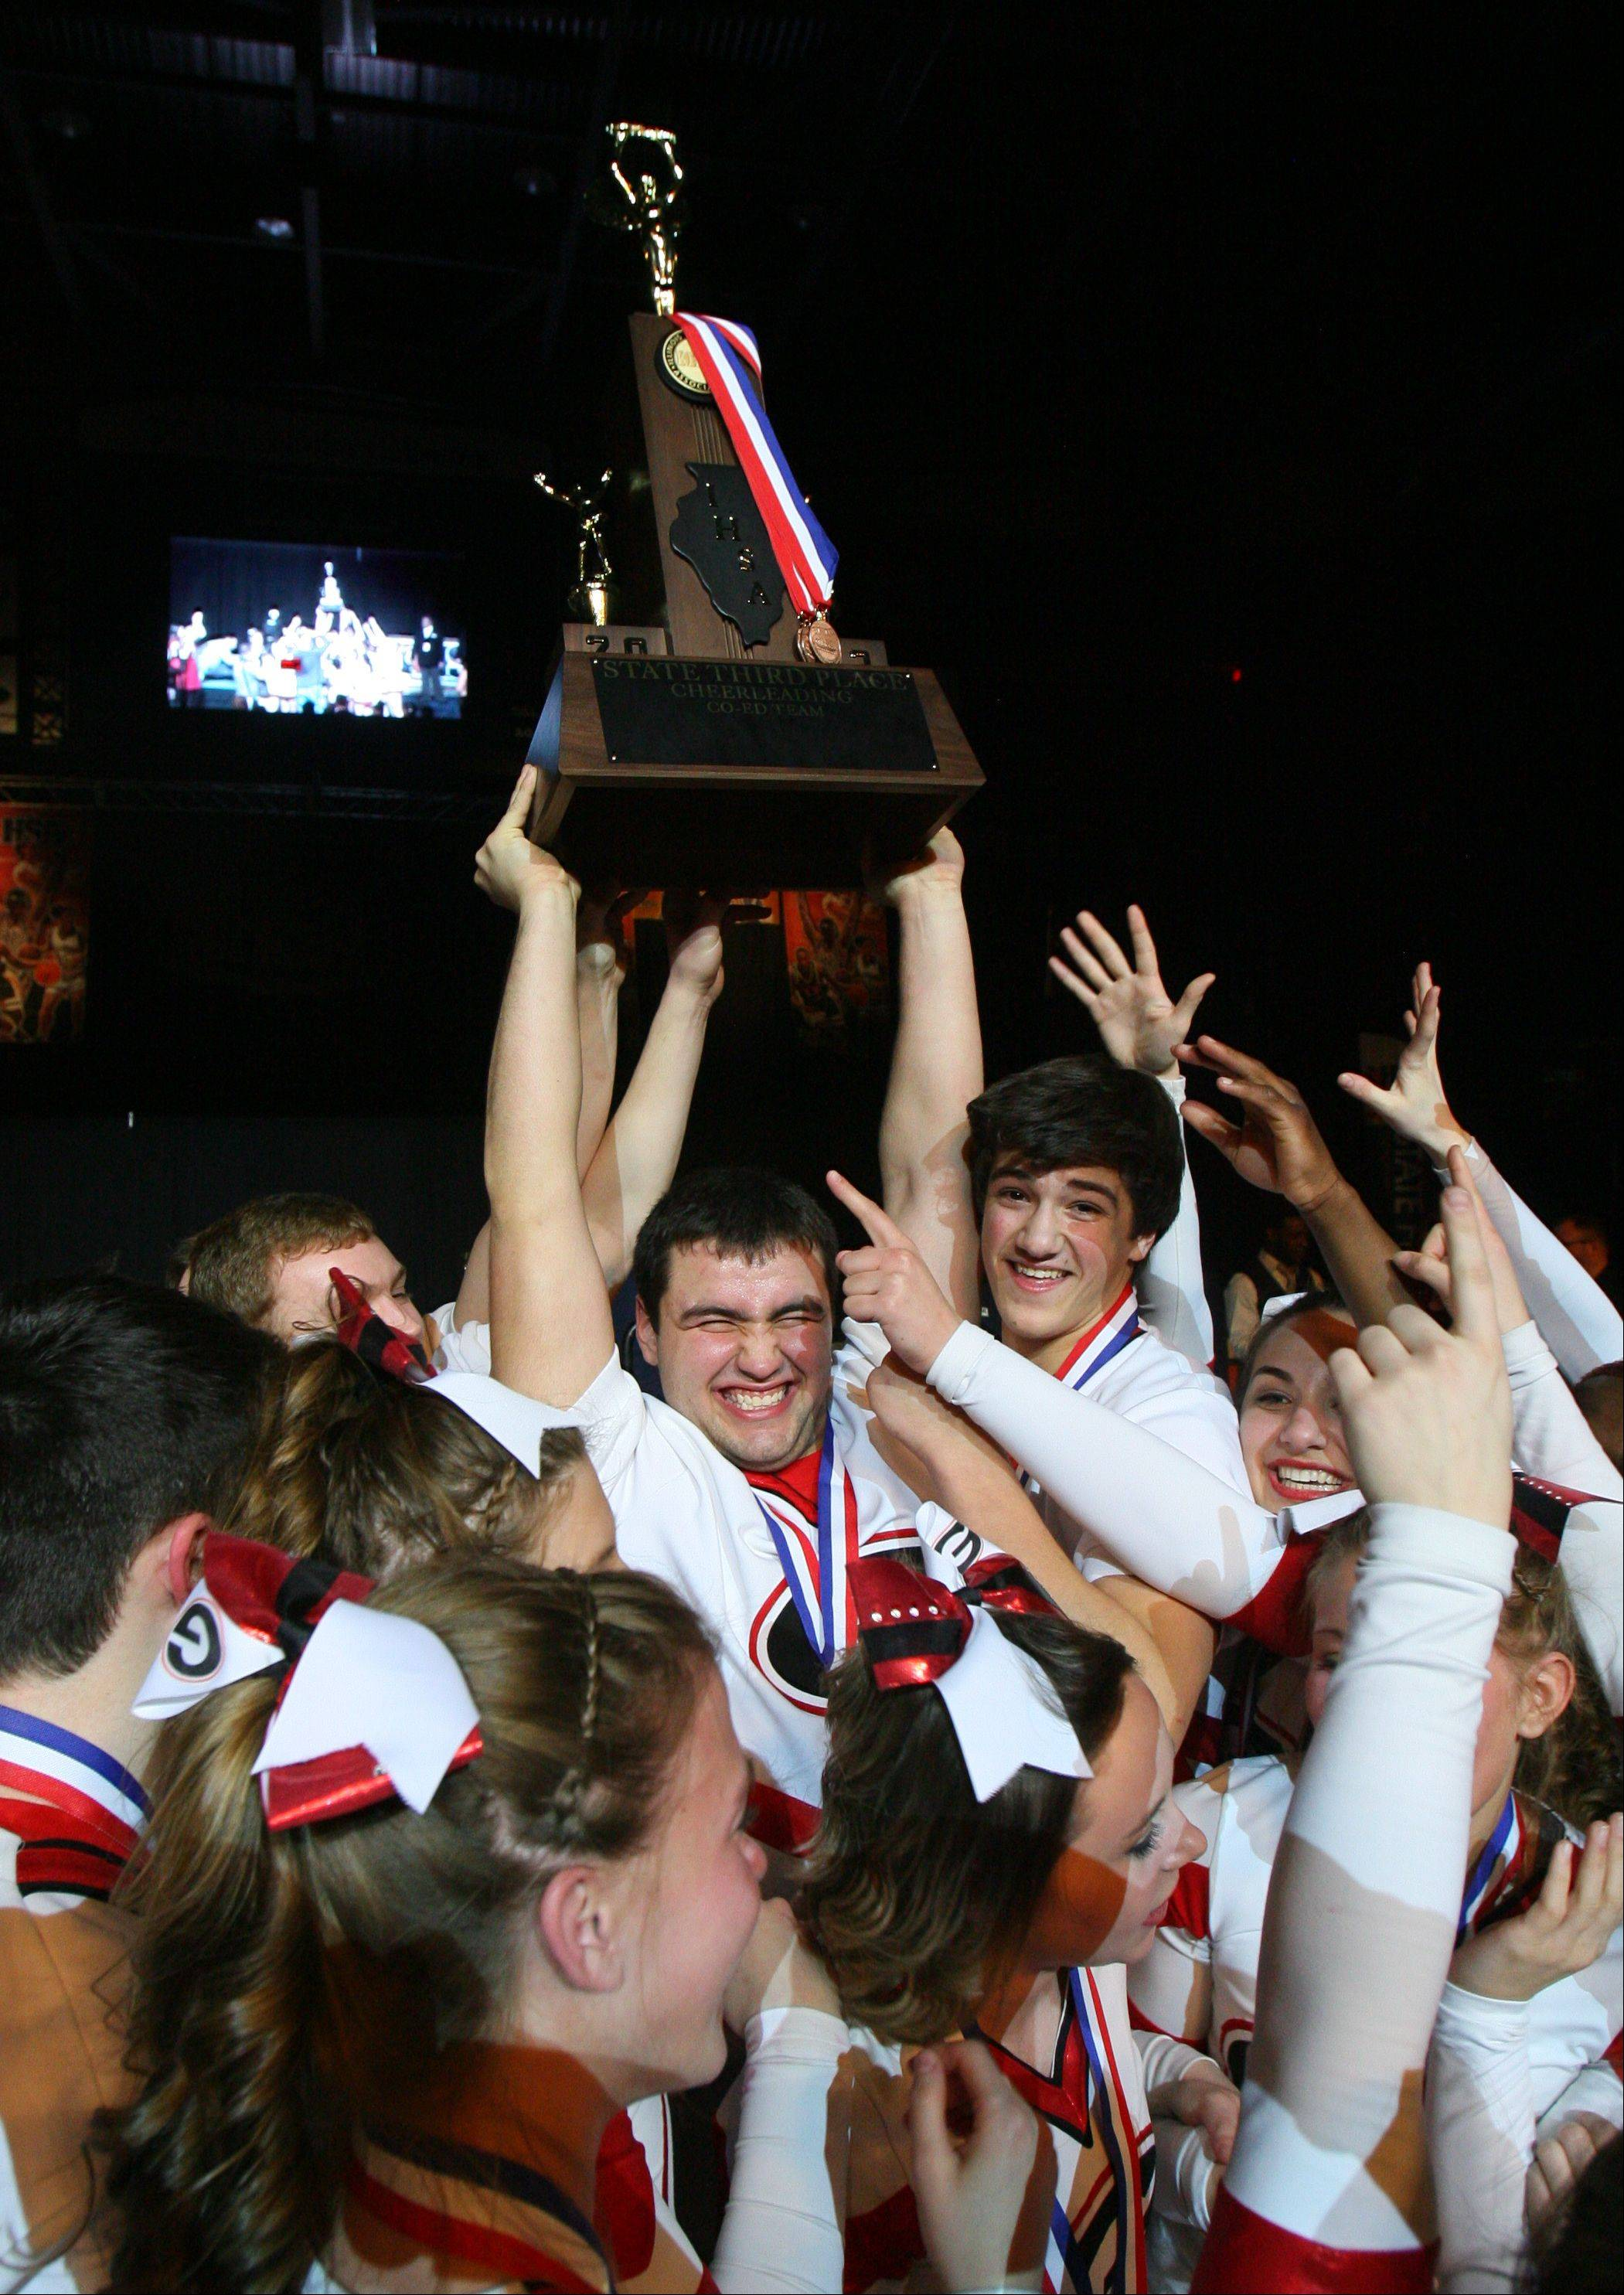 Grant High School's large co-ed team celebrate after winning 3rd place in the IHSA Competitive Cheerleading finals on Saturday, Feb. 2 at the U.S. Cellular Coliseum in Bloomington.